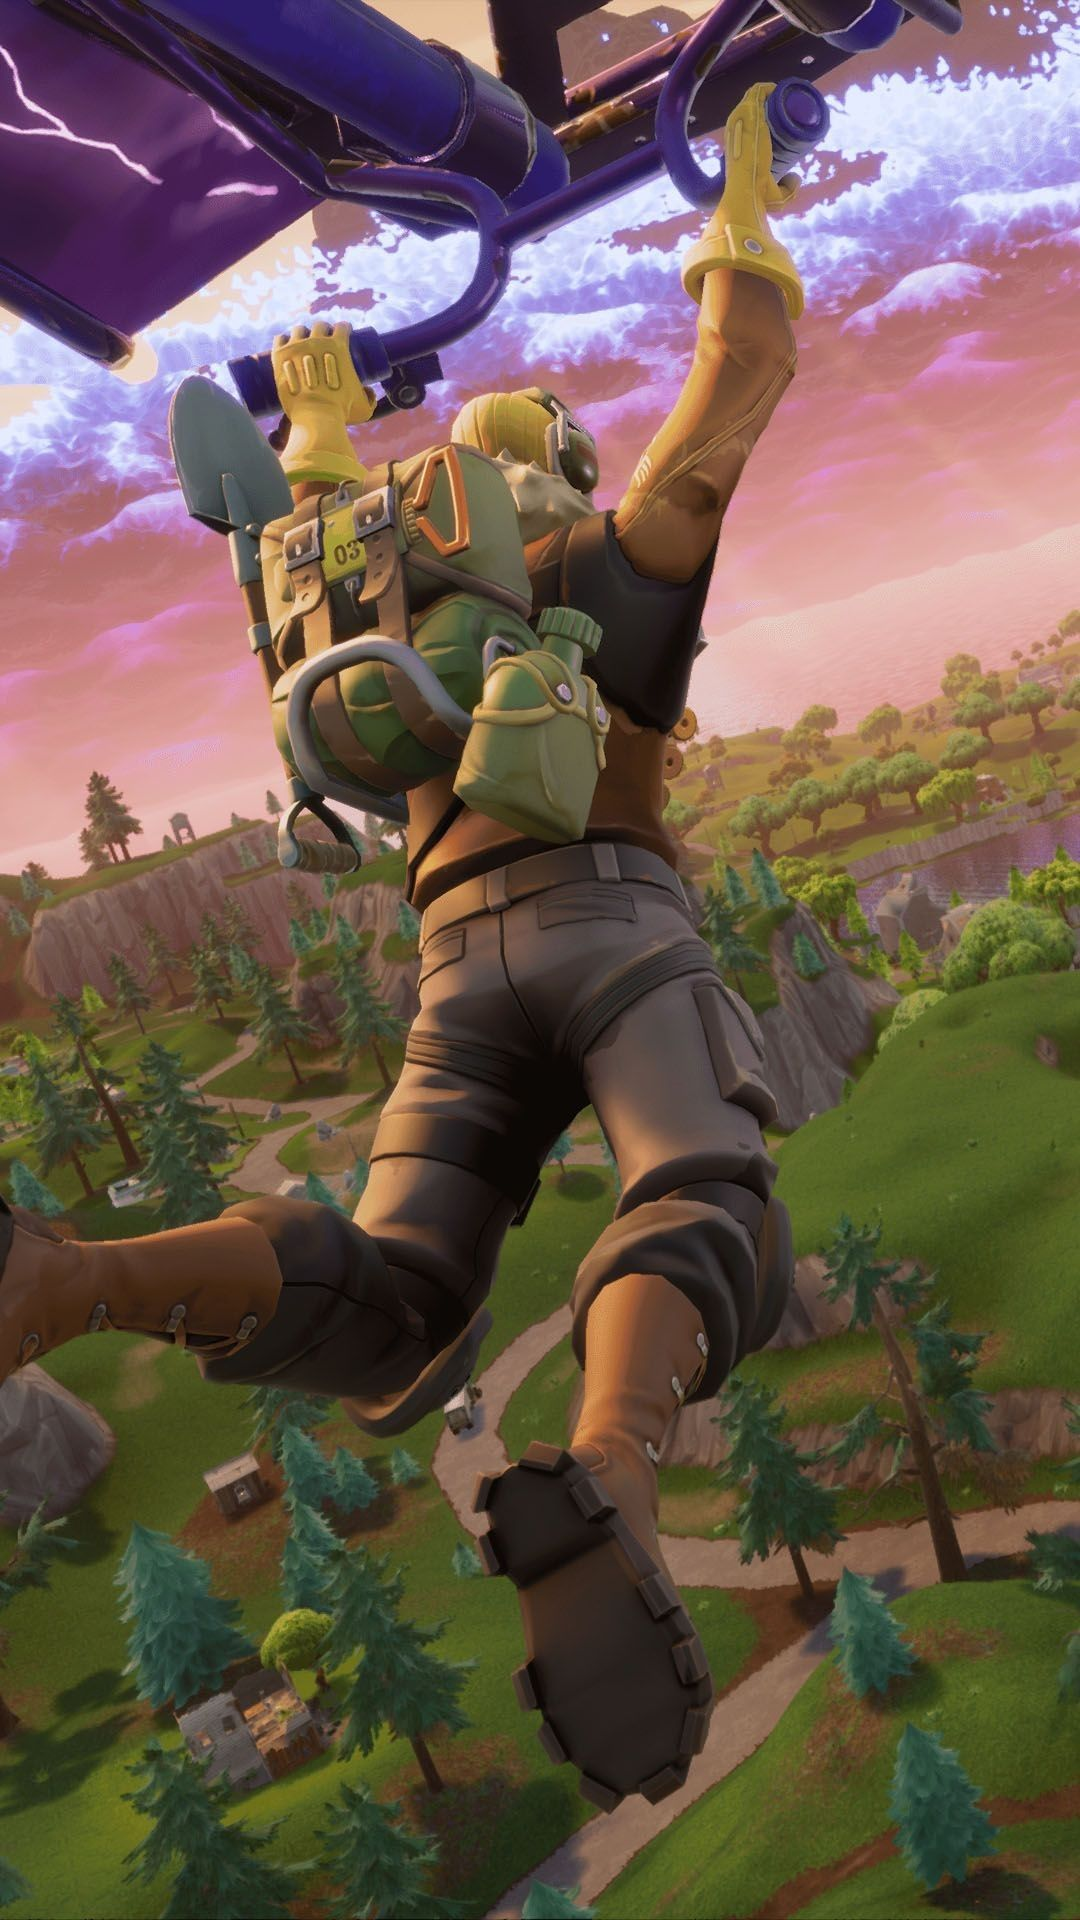 Cool Fortnite Battle Royale Wallpapers - Top Free Cool ...